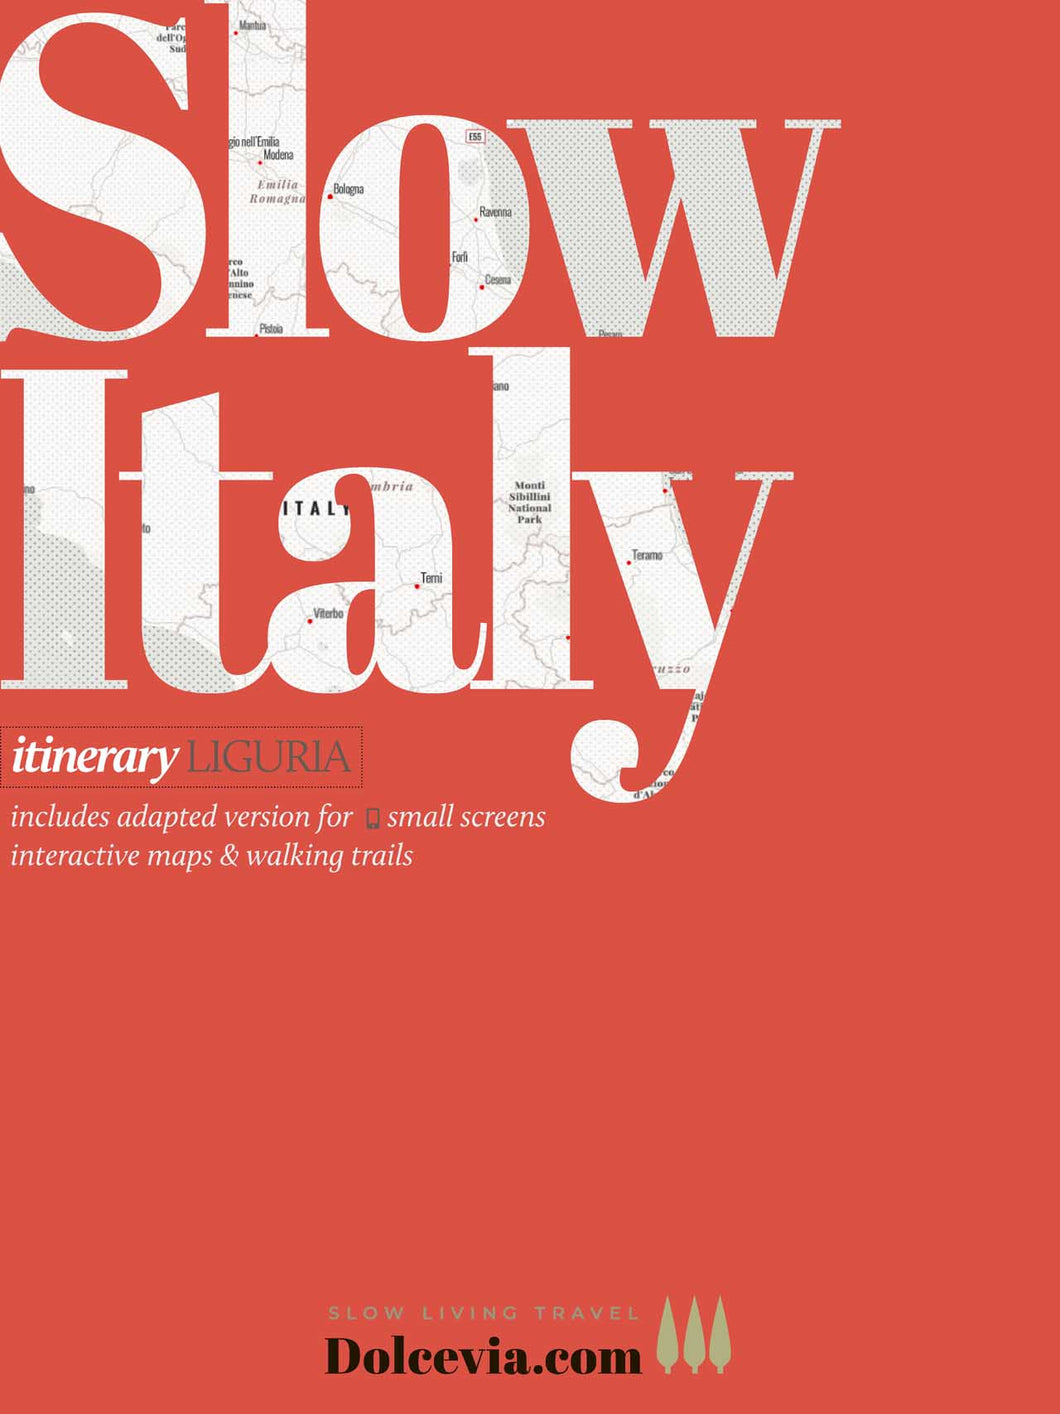 SlowItaly App-book Itinerary LIGURIA V 1.1